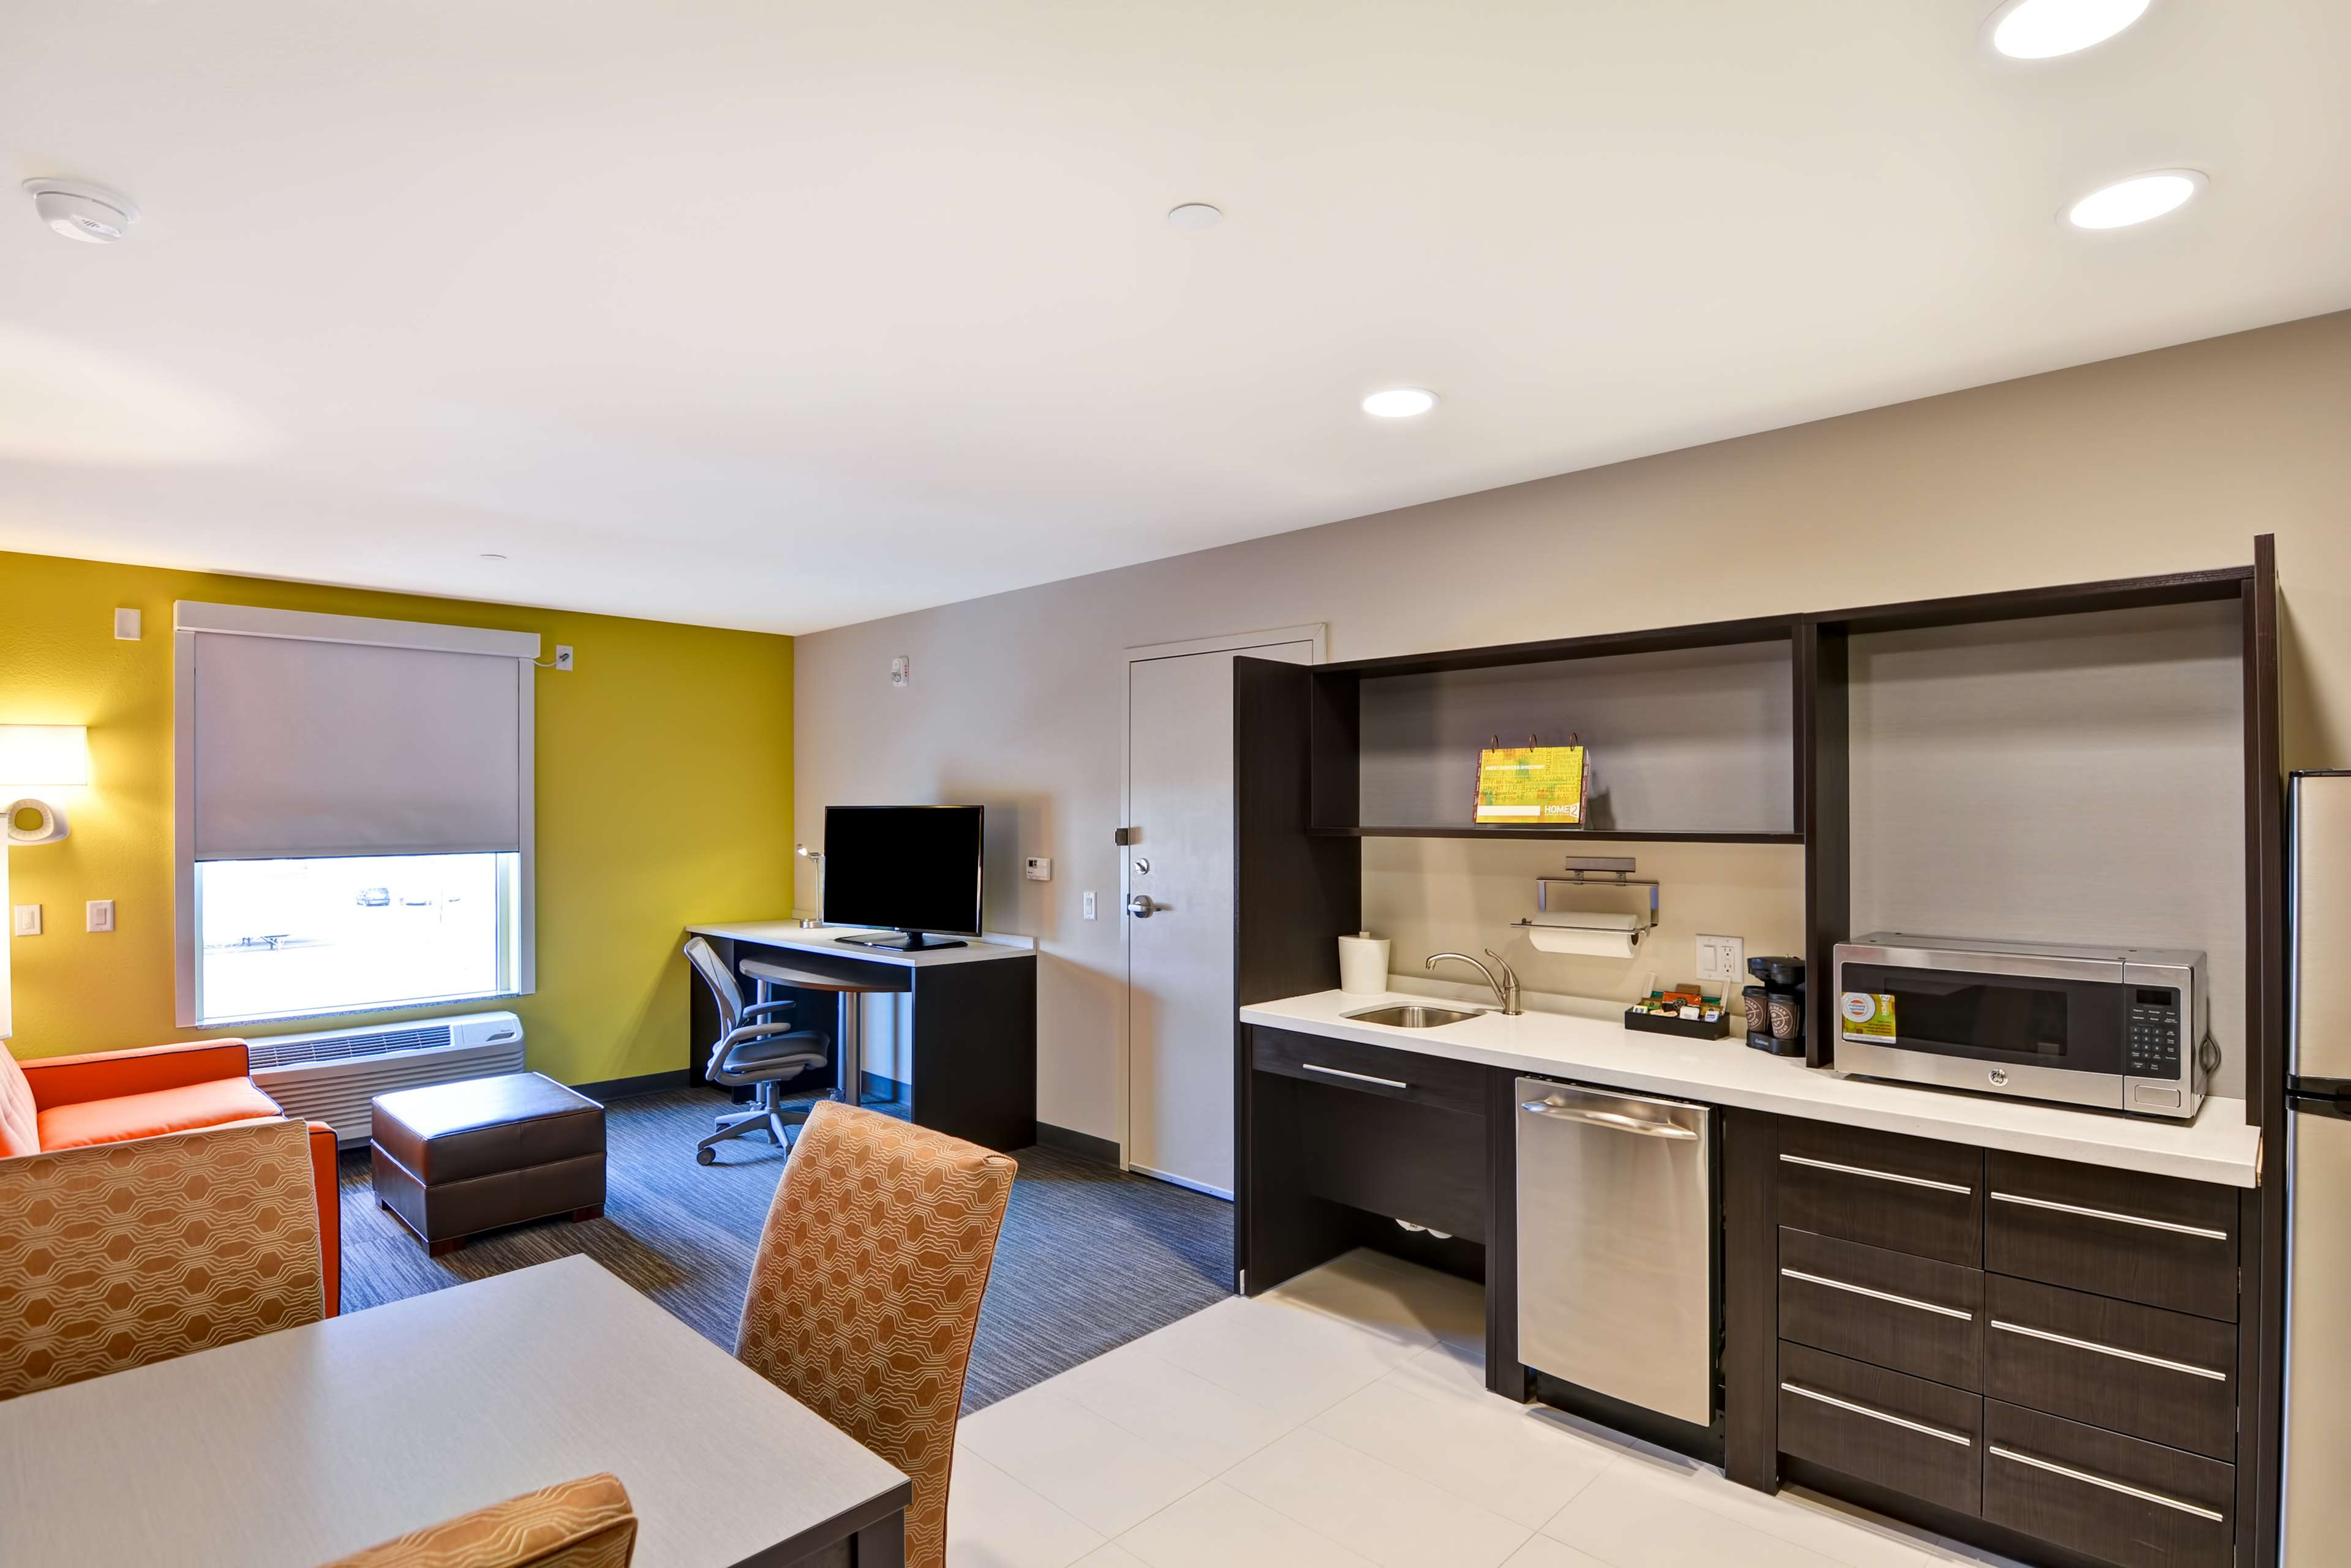 Home2 Suites by Hilton Green Bay image 24